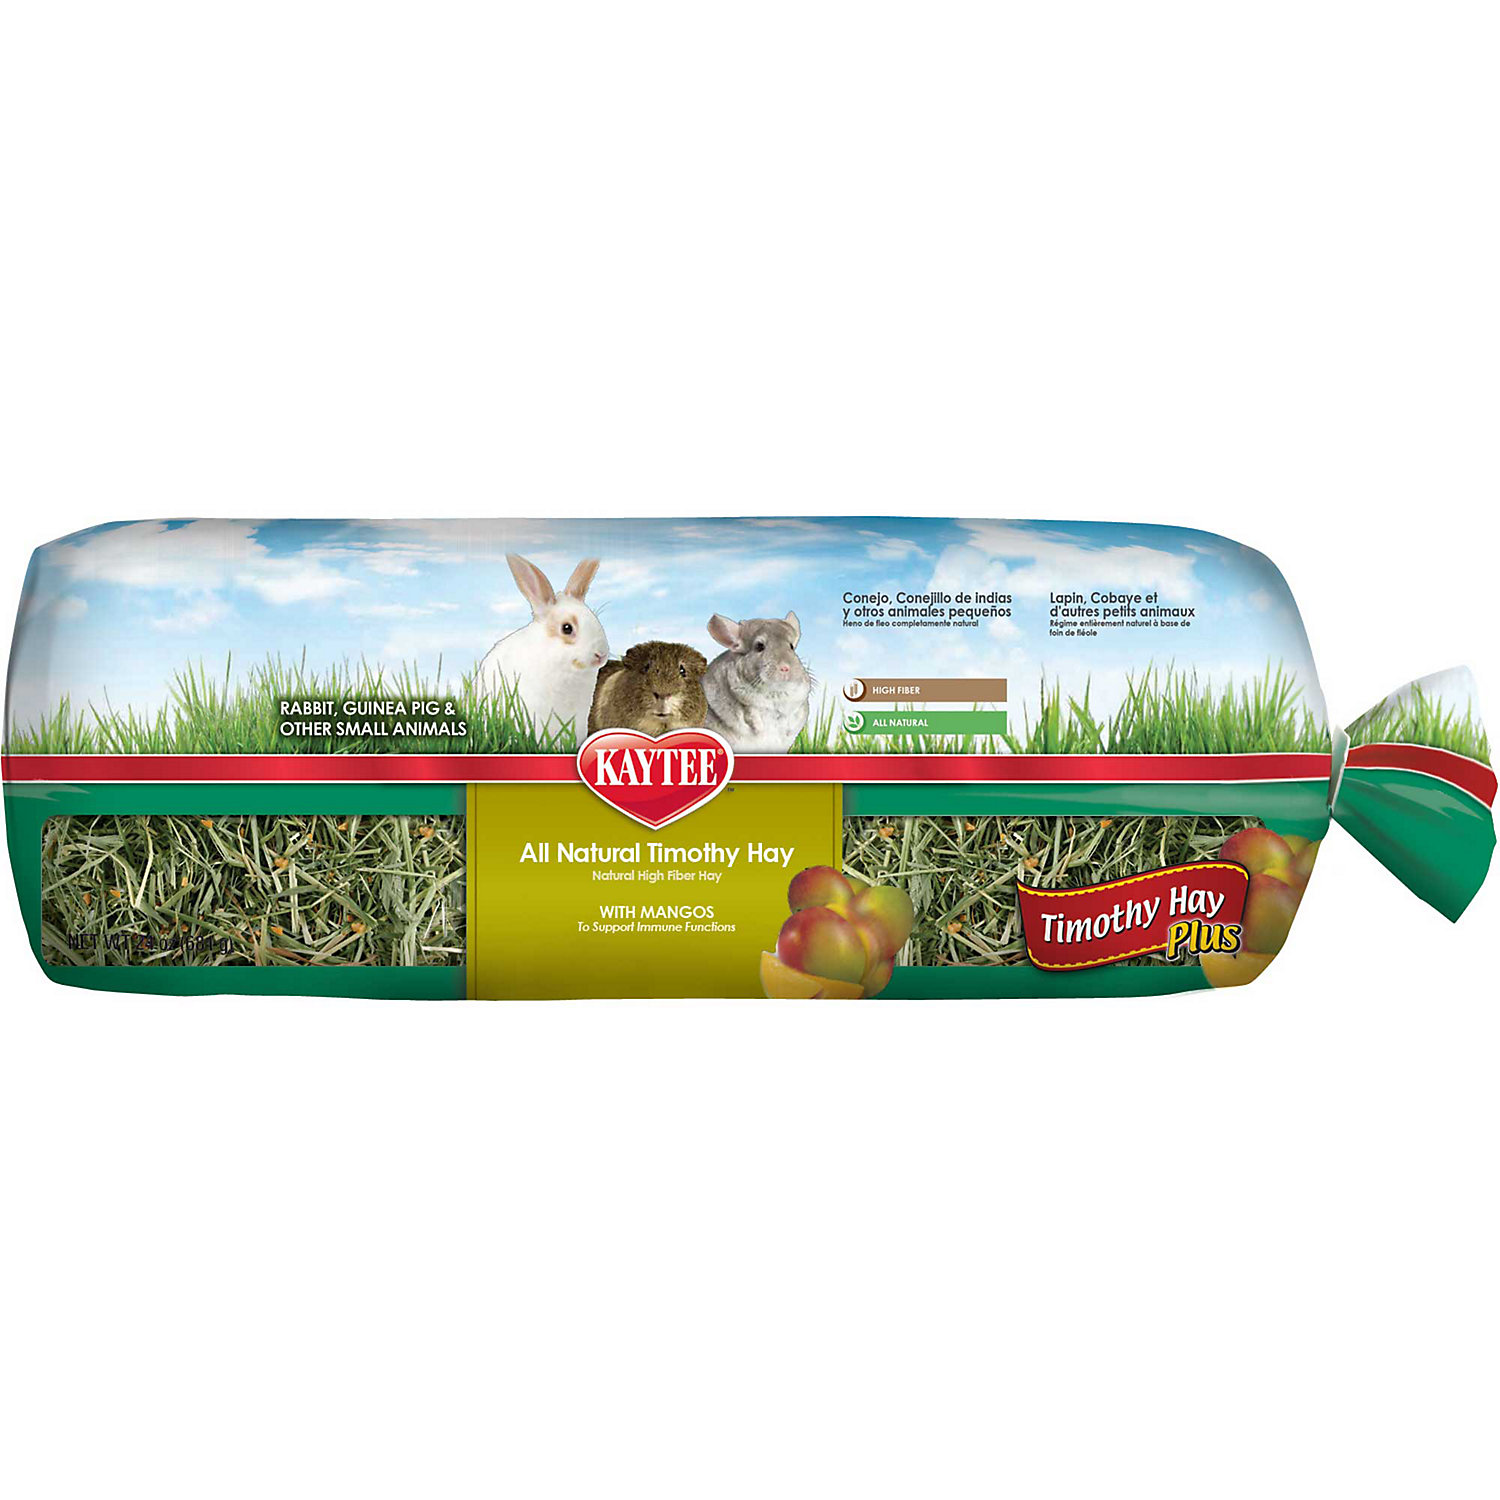 Kaytee Timothy Hay Plus With Mango For Rabbits Small Animals 24 Oz.